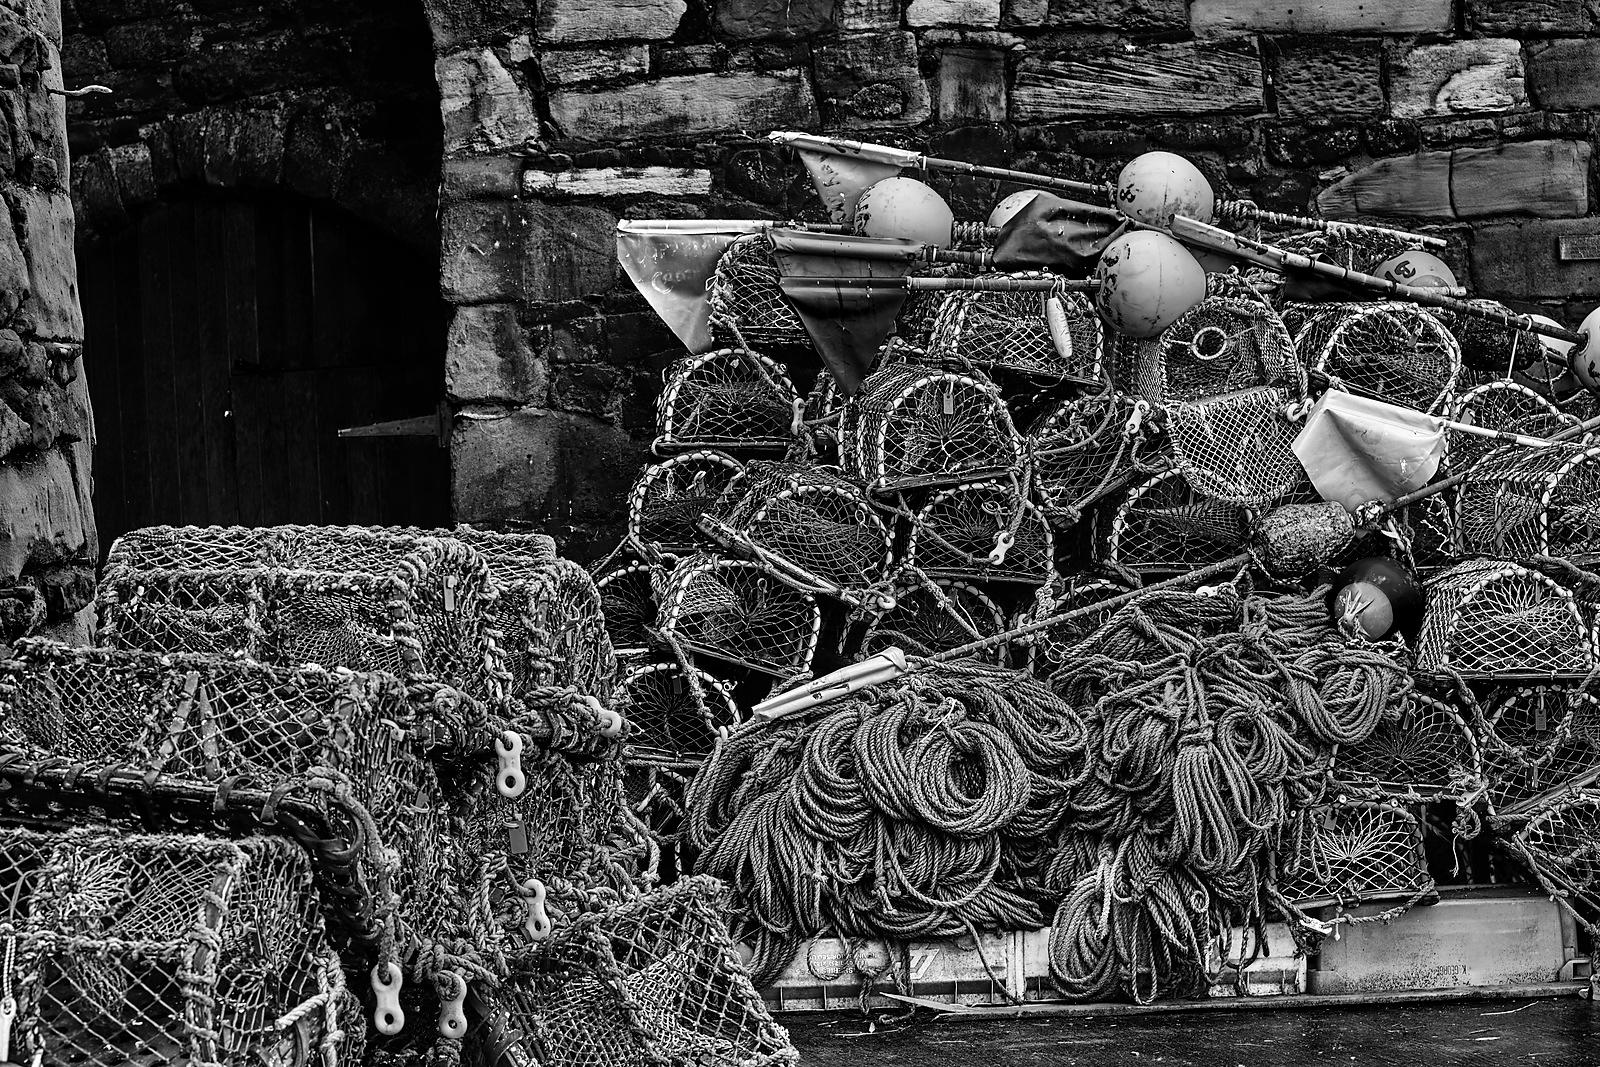 More lobster pots (B&W)